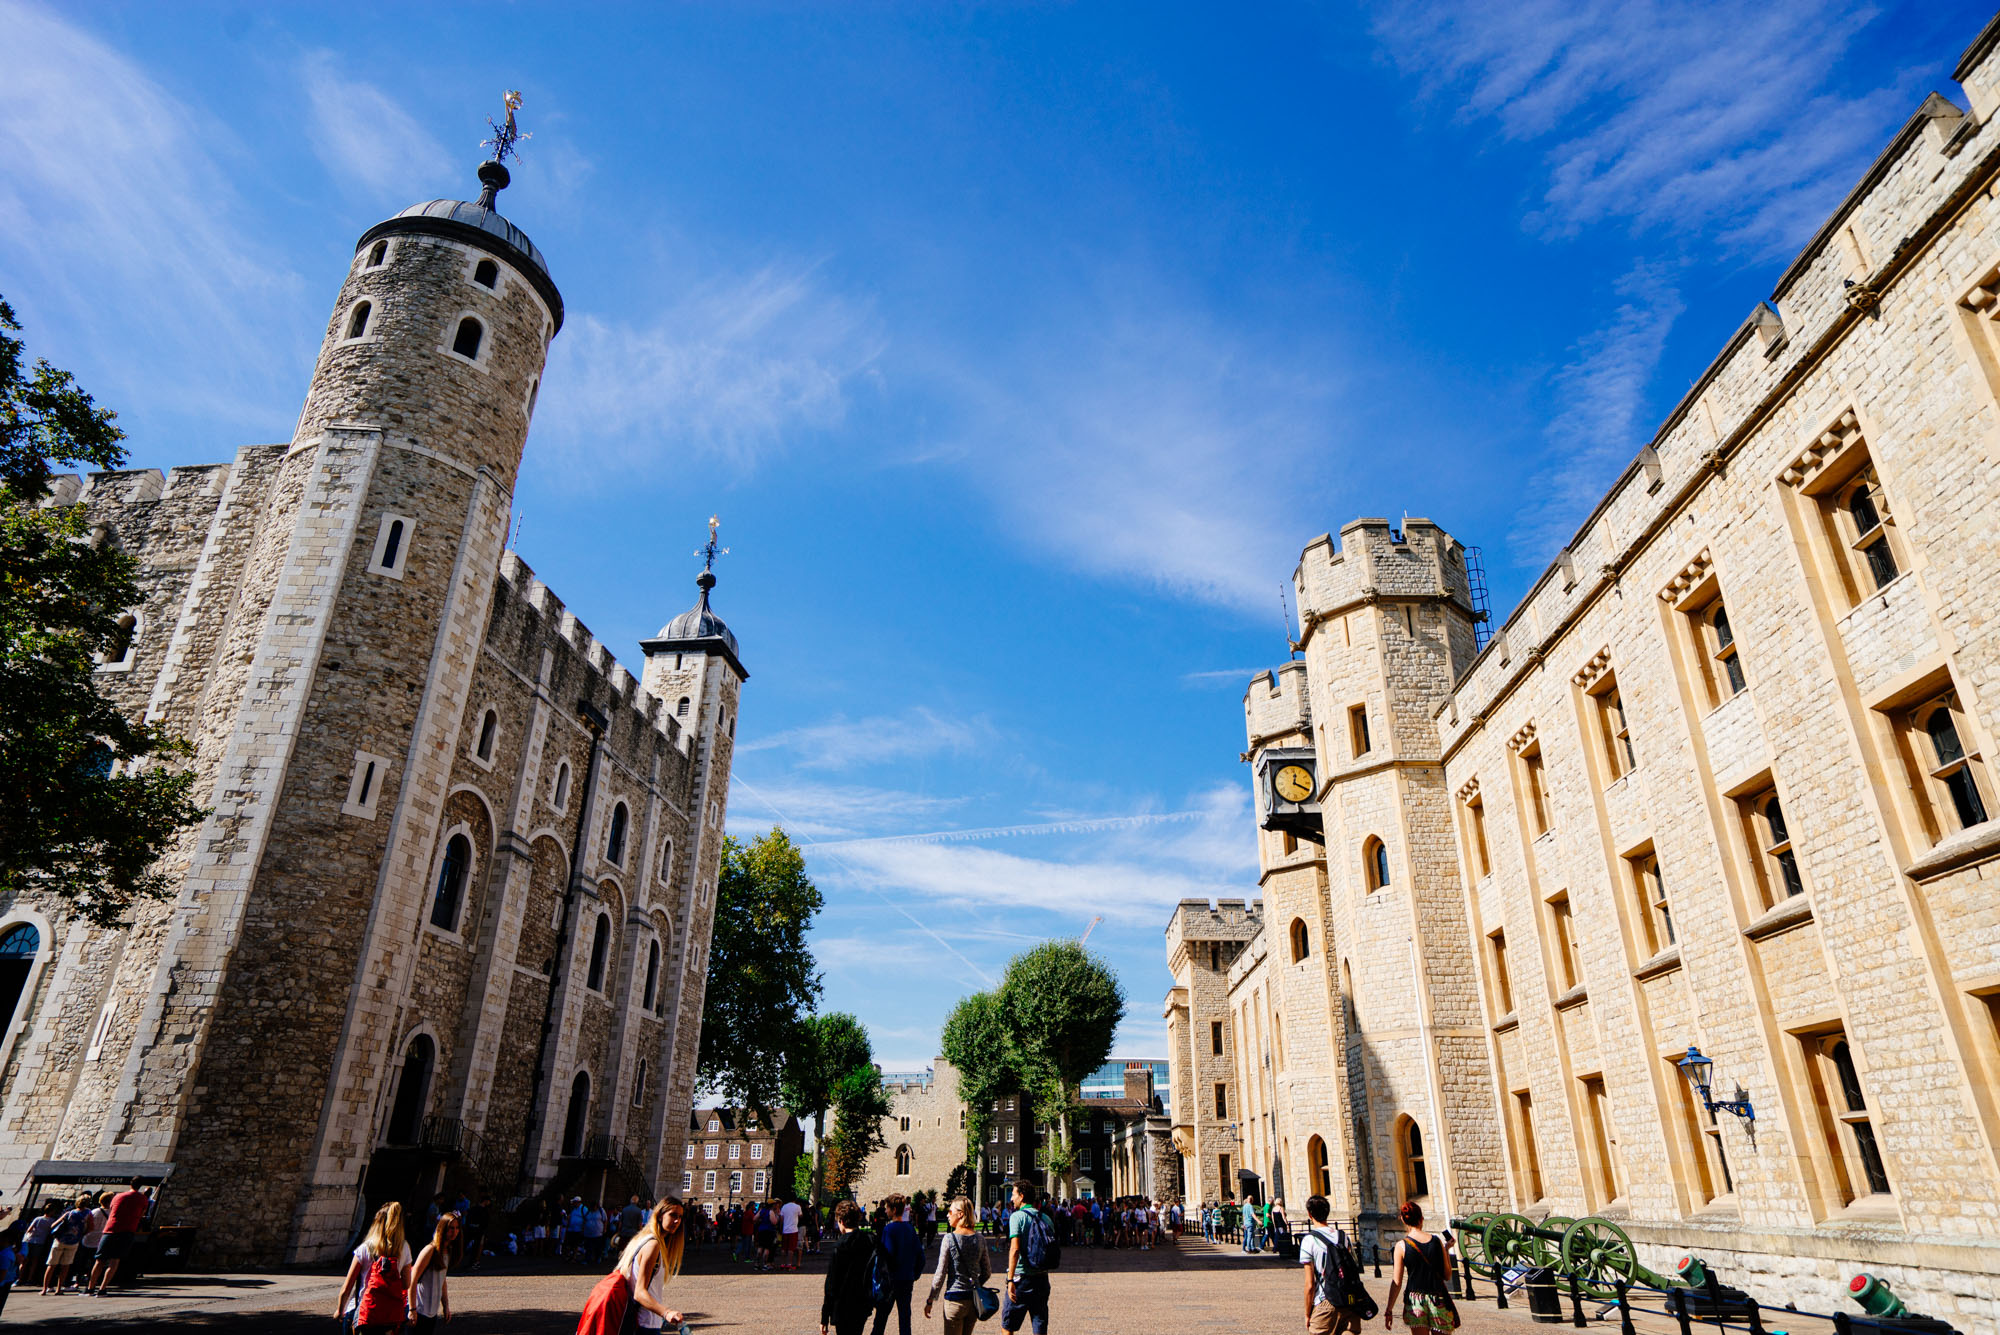 Inside the walls of The Tower of London